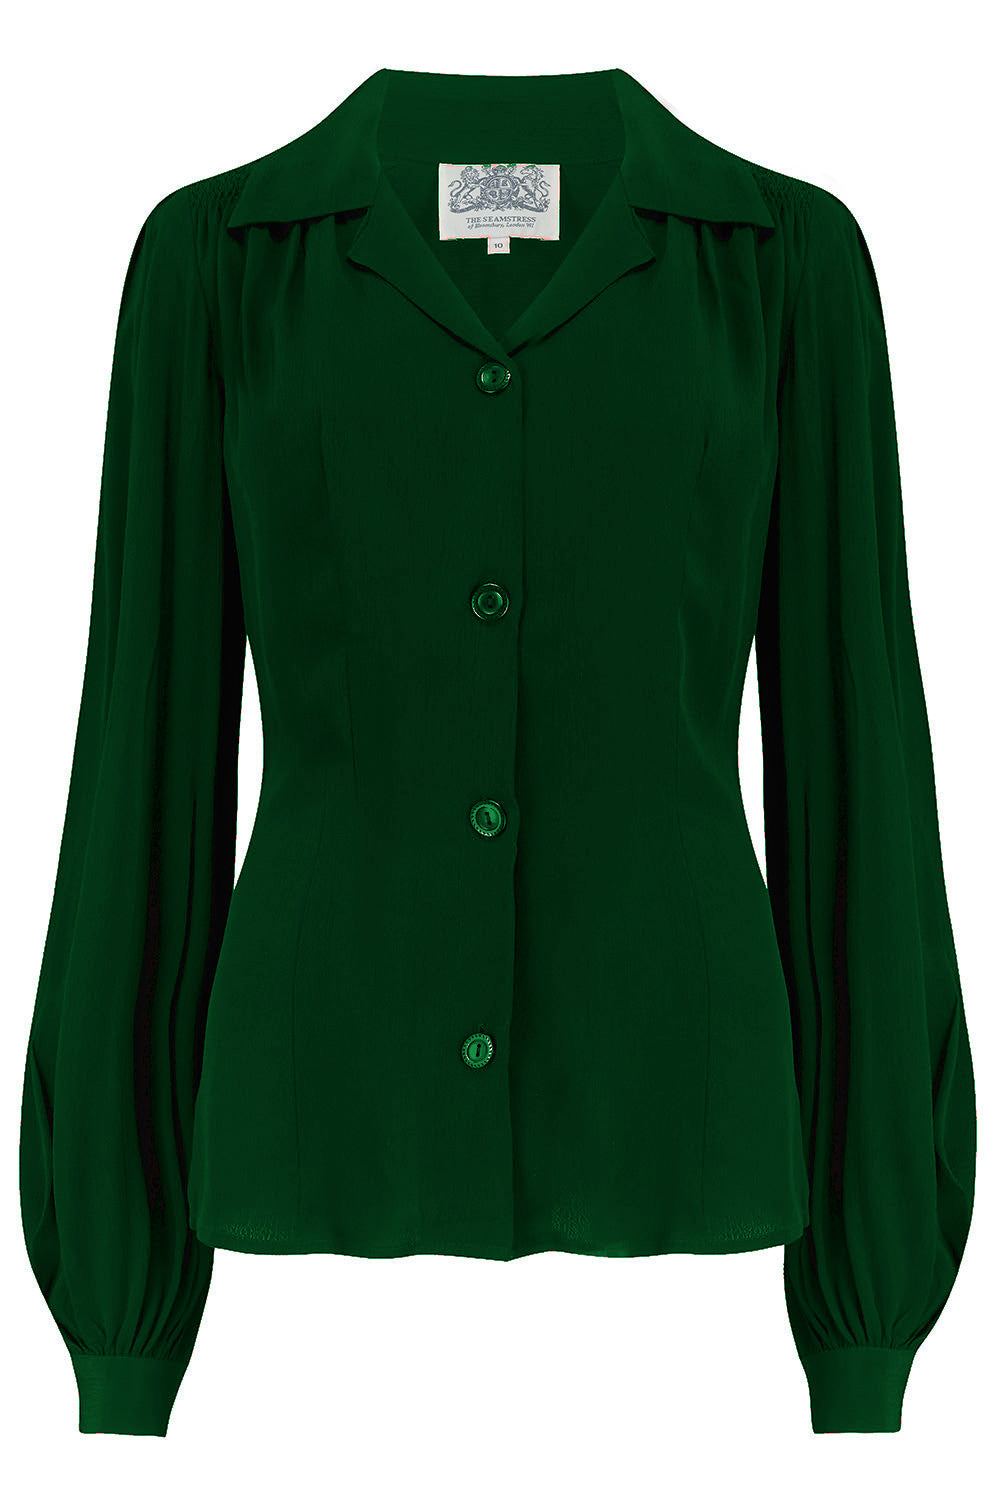 The Seamstress Of Bloomsbury Poppy Long Sleeve Blouse in Green, Authentic & Classic 1940s Vintage Style - RocknRomance Clothing